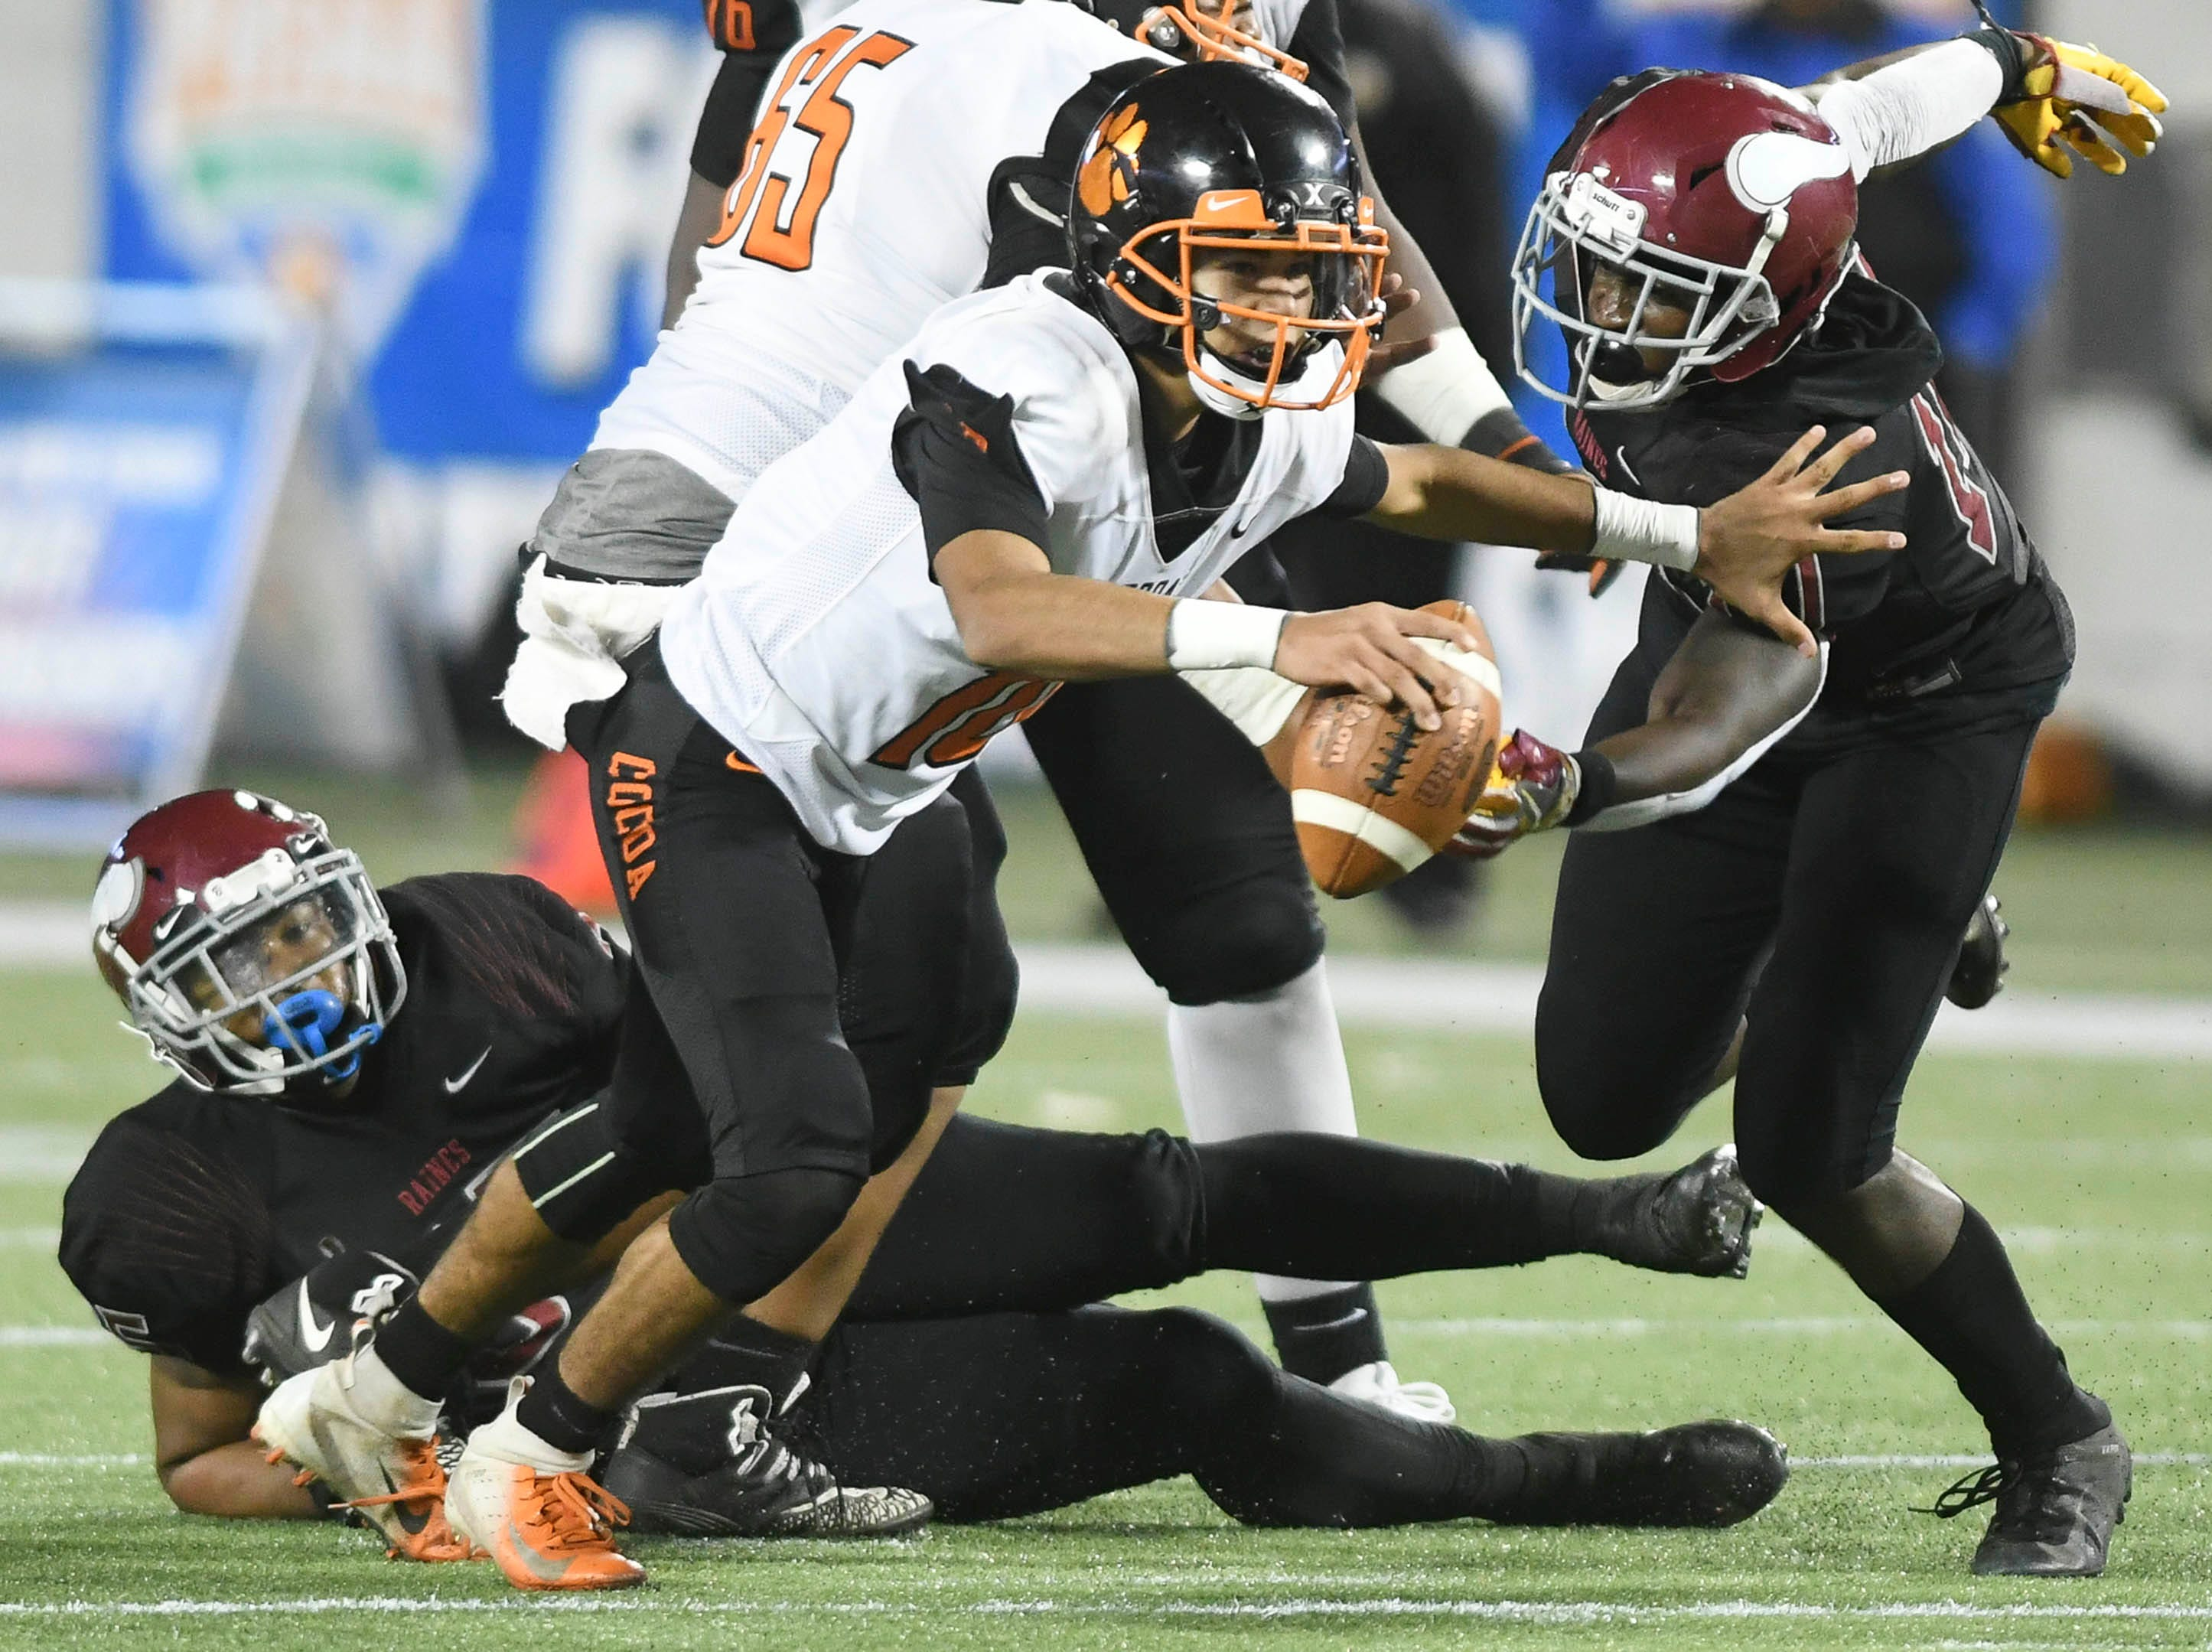 Cocoa QB Diego Arroyo is sacked by Aric Horne and Jaren Wilson of Raines during Thursday's Class 4A football state championship.